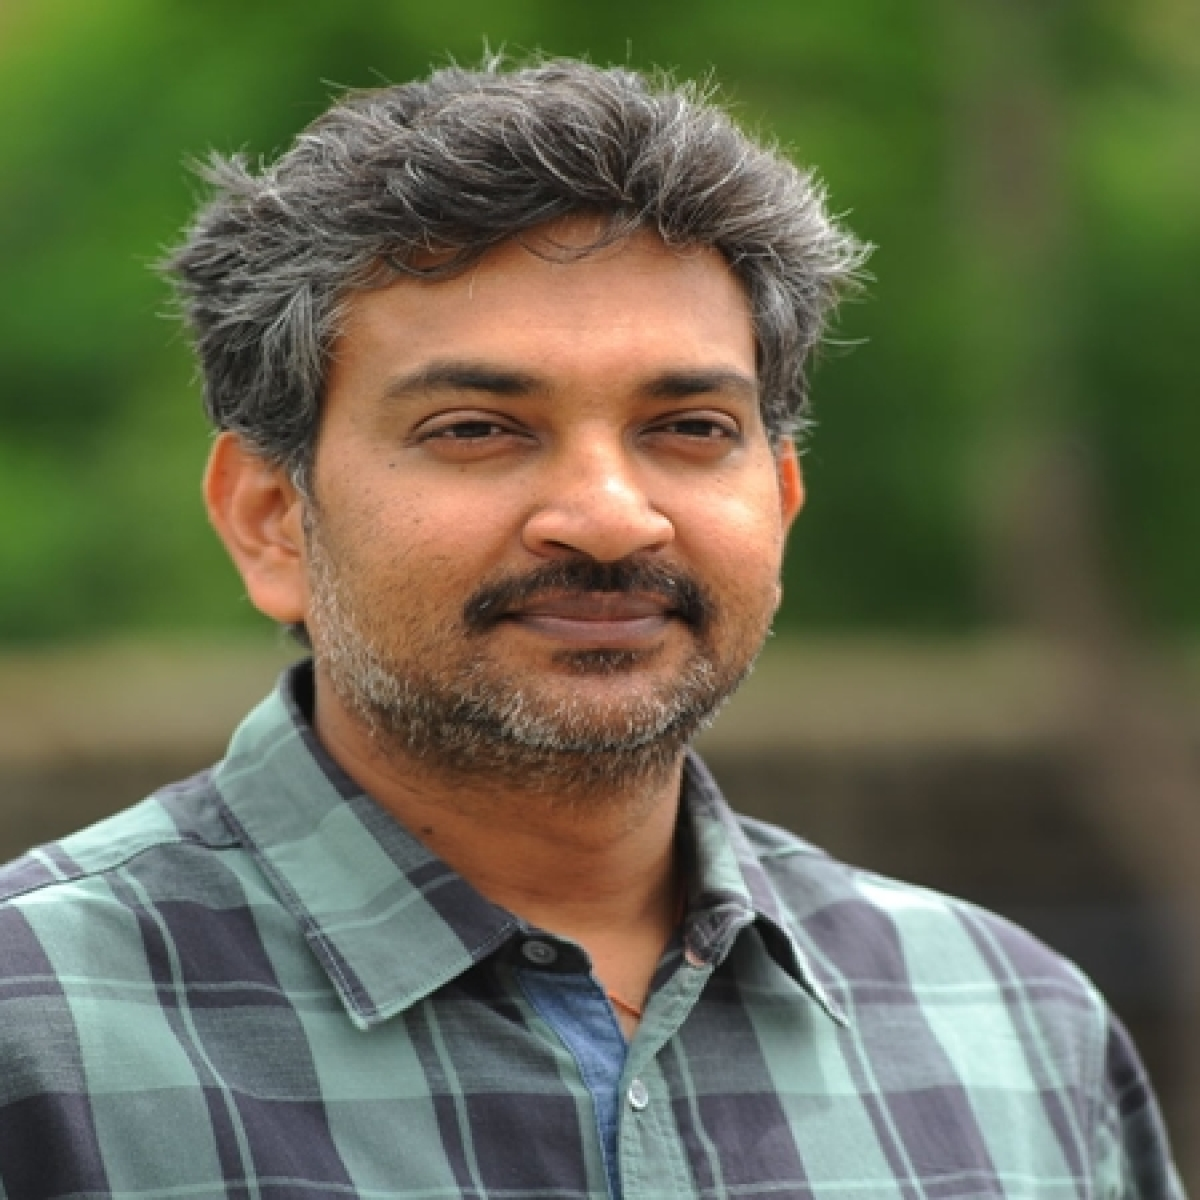 #RajamouliMakeRamayan trends on Twitter as fans demand SS Rajamouli film based on the epic